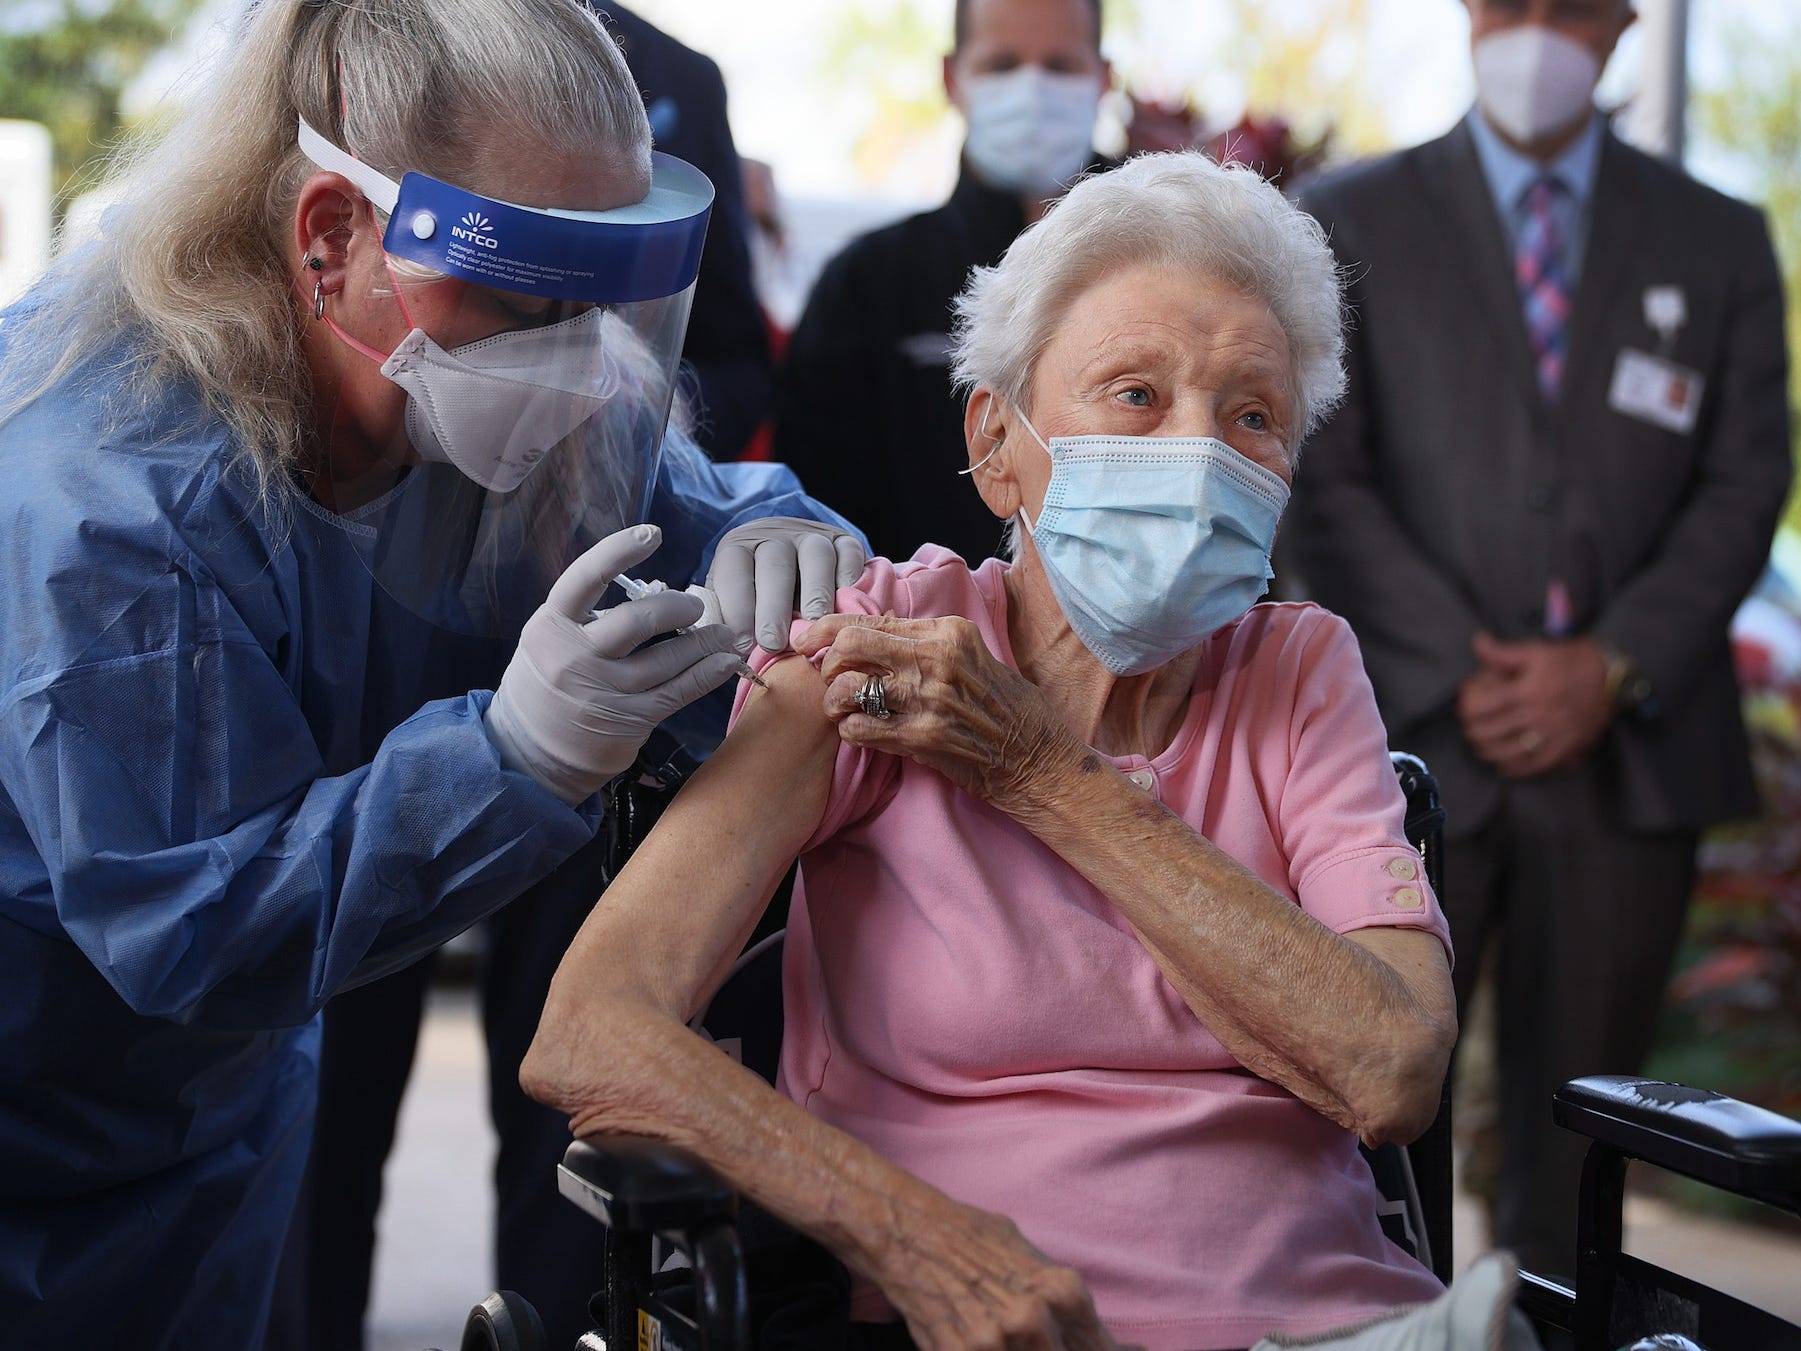 Cases of COVID-19 in nursing homes have steadily fallen since the US rolled out vaccines, the latest data shows